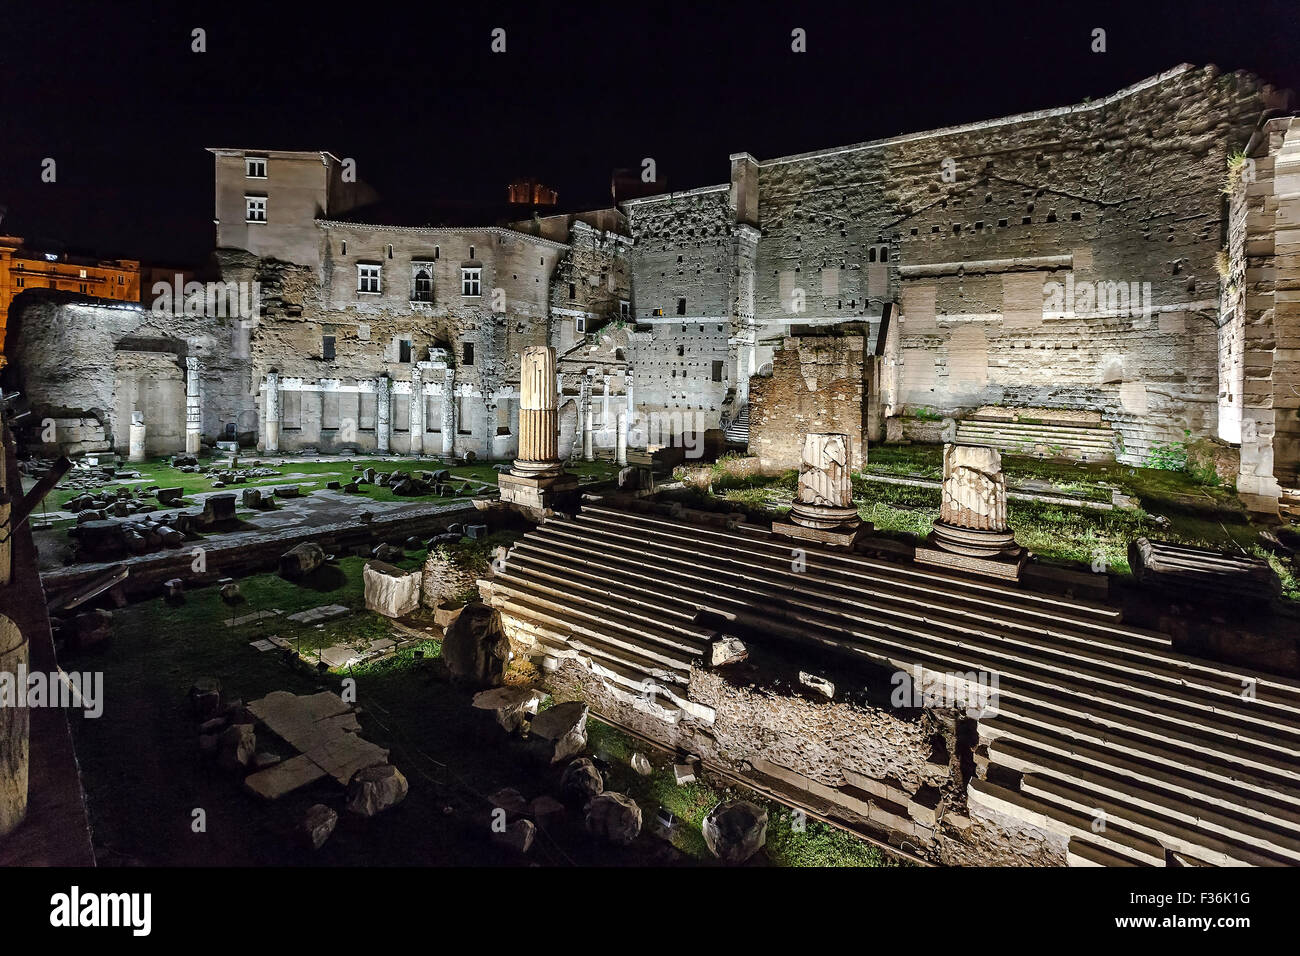 Forum of augustus illuminated with new led lights made by the city forum of augustus illuminated with new led lights made by the city of rome night snapshot made the opening day mozeypictures Choice Image